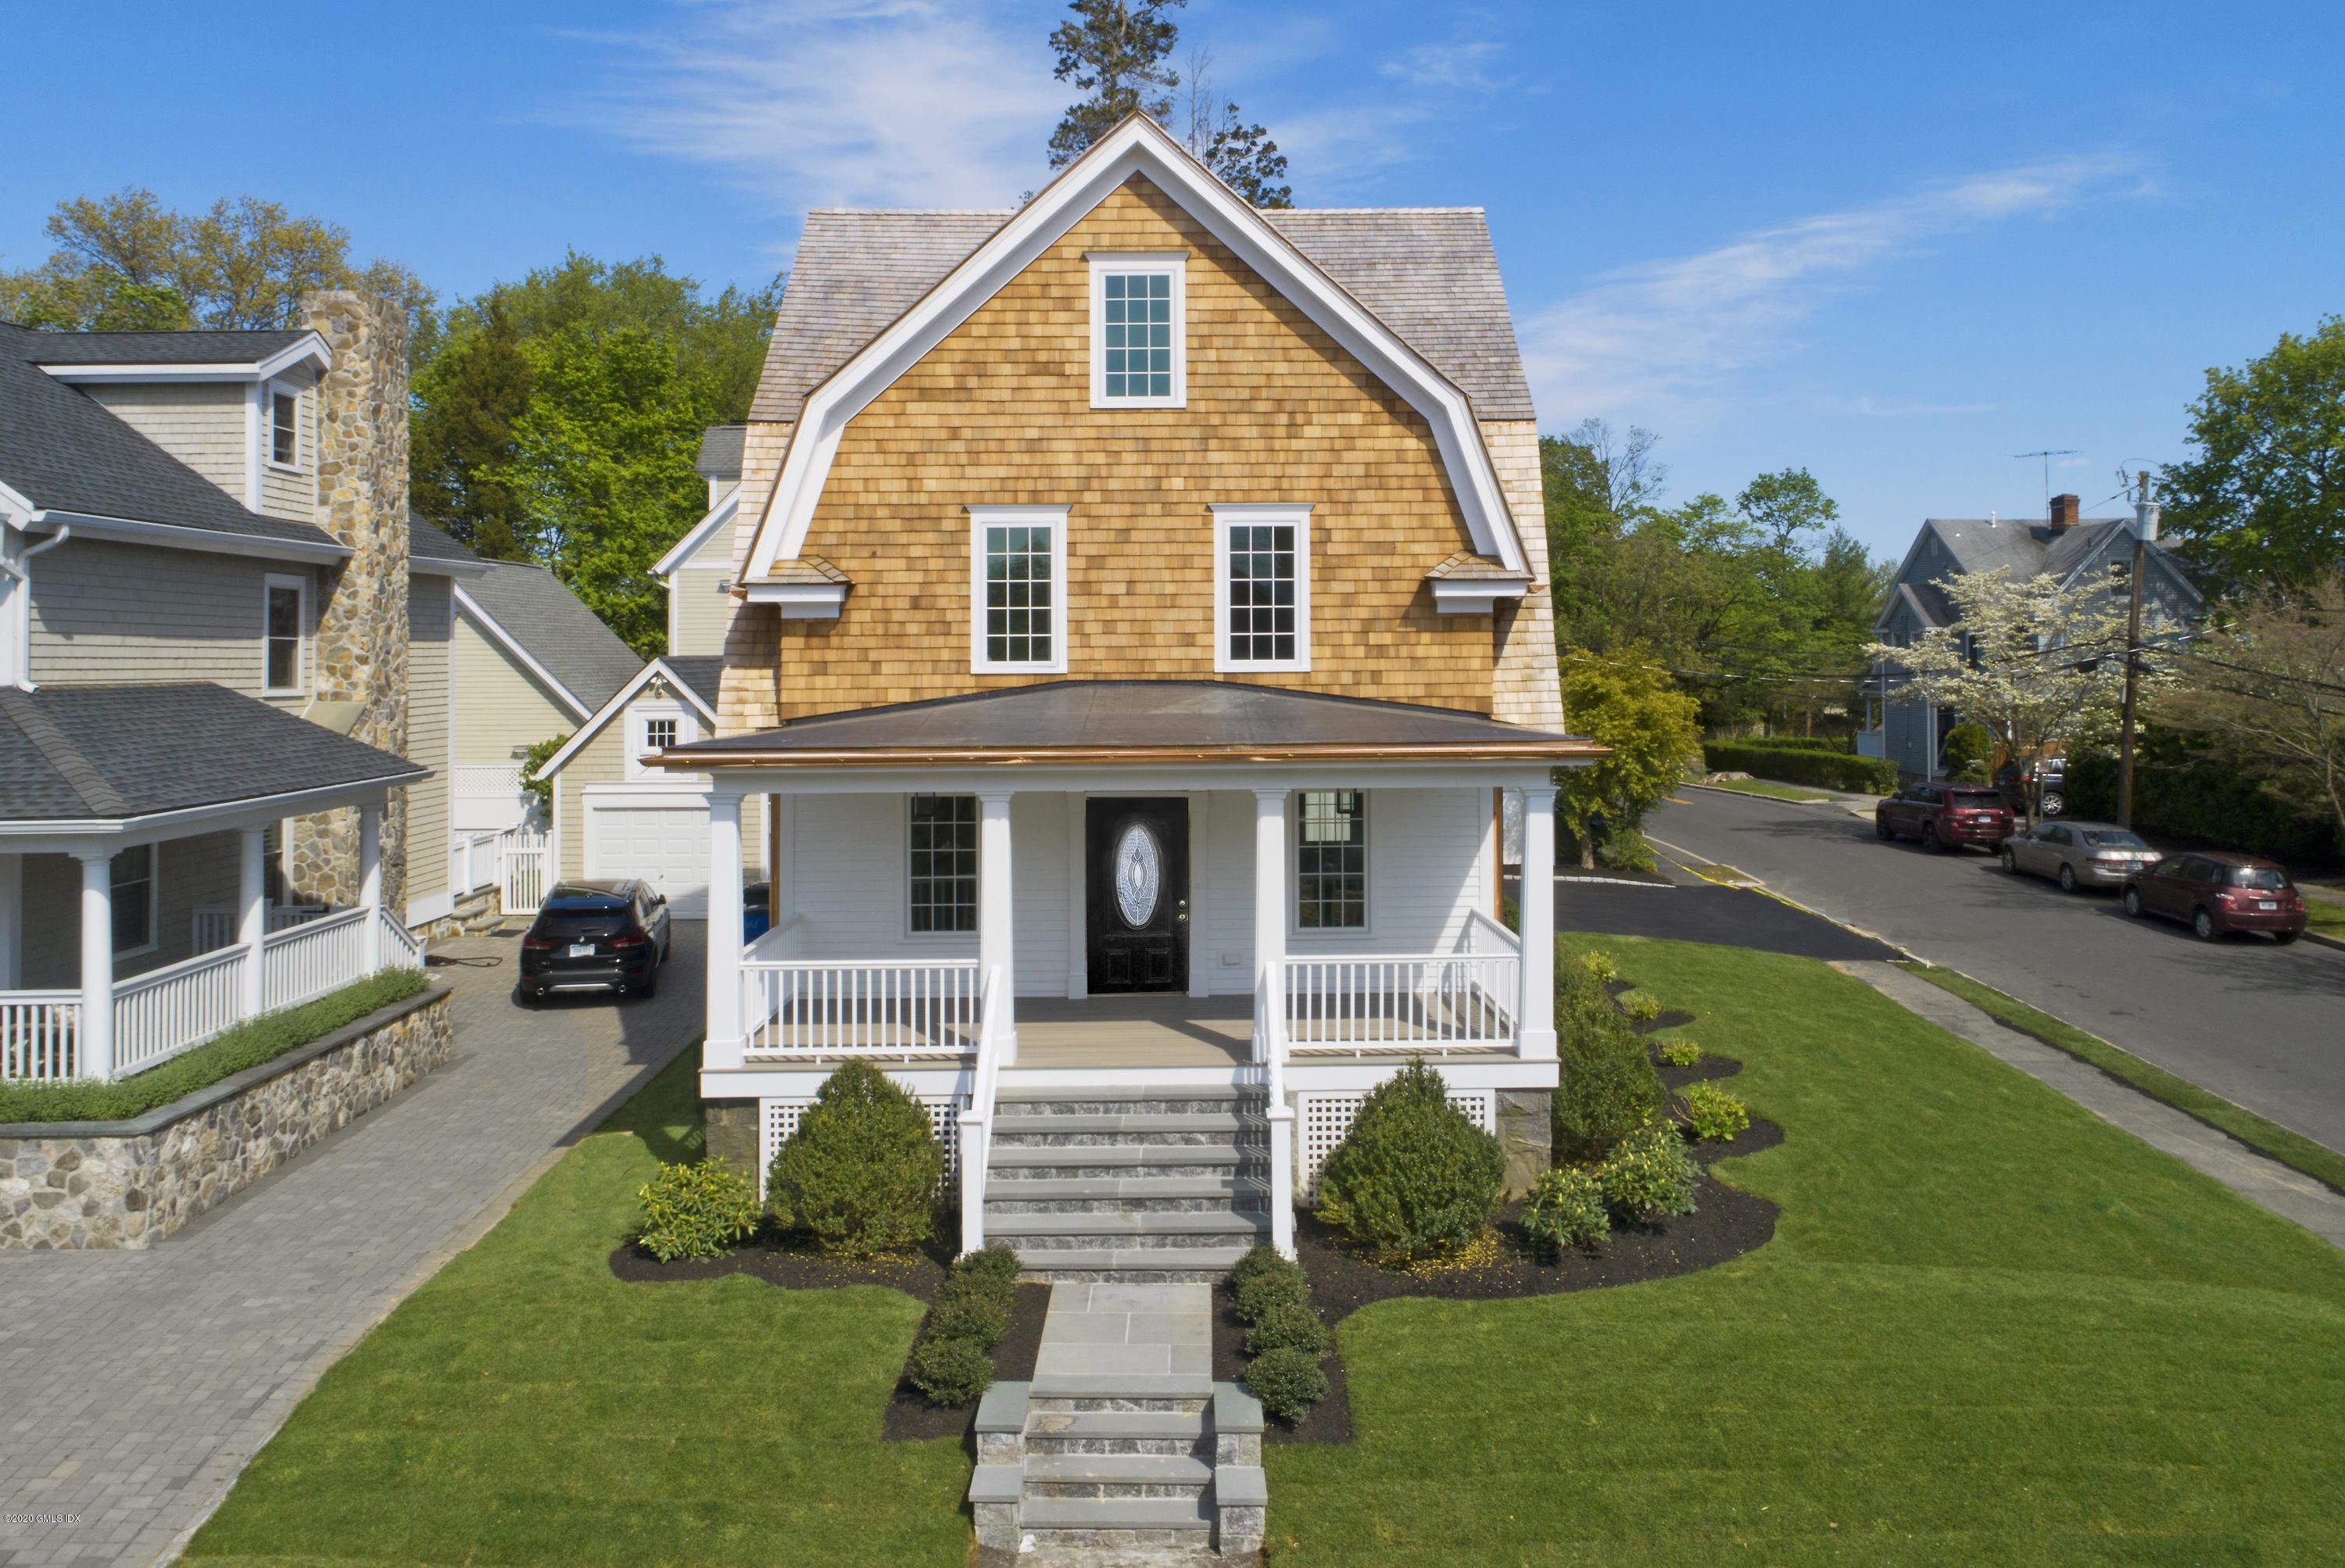 23 Connecticut Avenue, Greenwich, Connecticut 06830, 3 Bedrooms Bedrooms, ,4 BathroomsBathrooms,Single family,For sale,Connecticut,109899